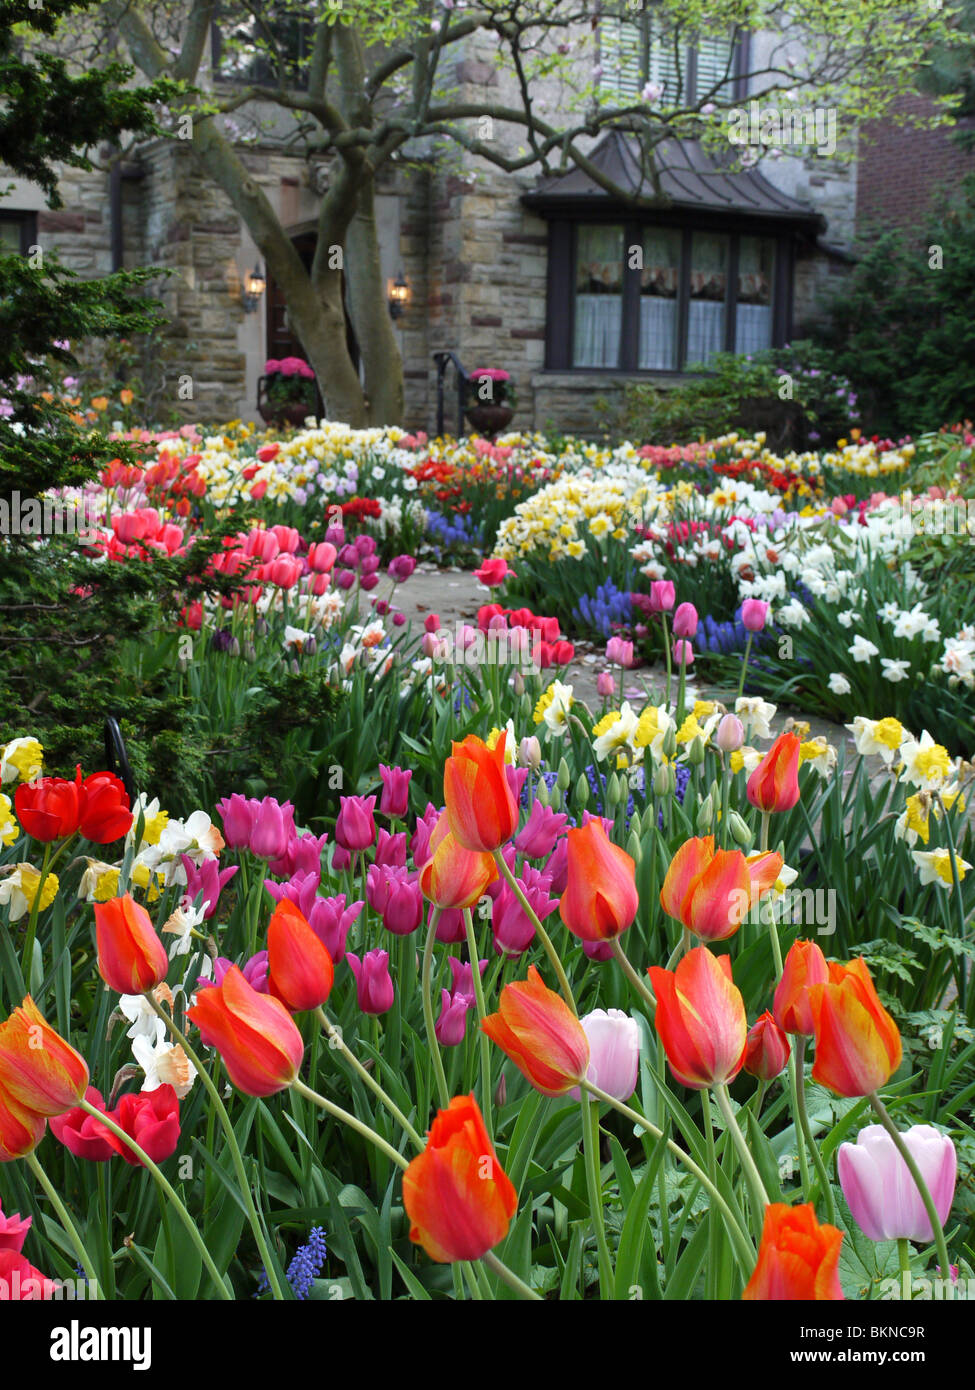 Spring garden in front yard of house, with colorful tulips - Stock Image